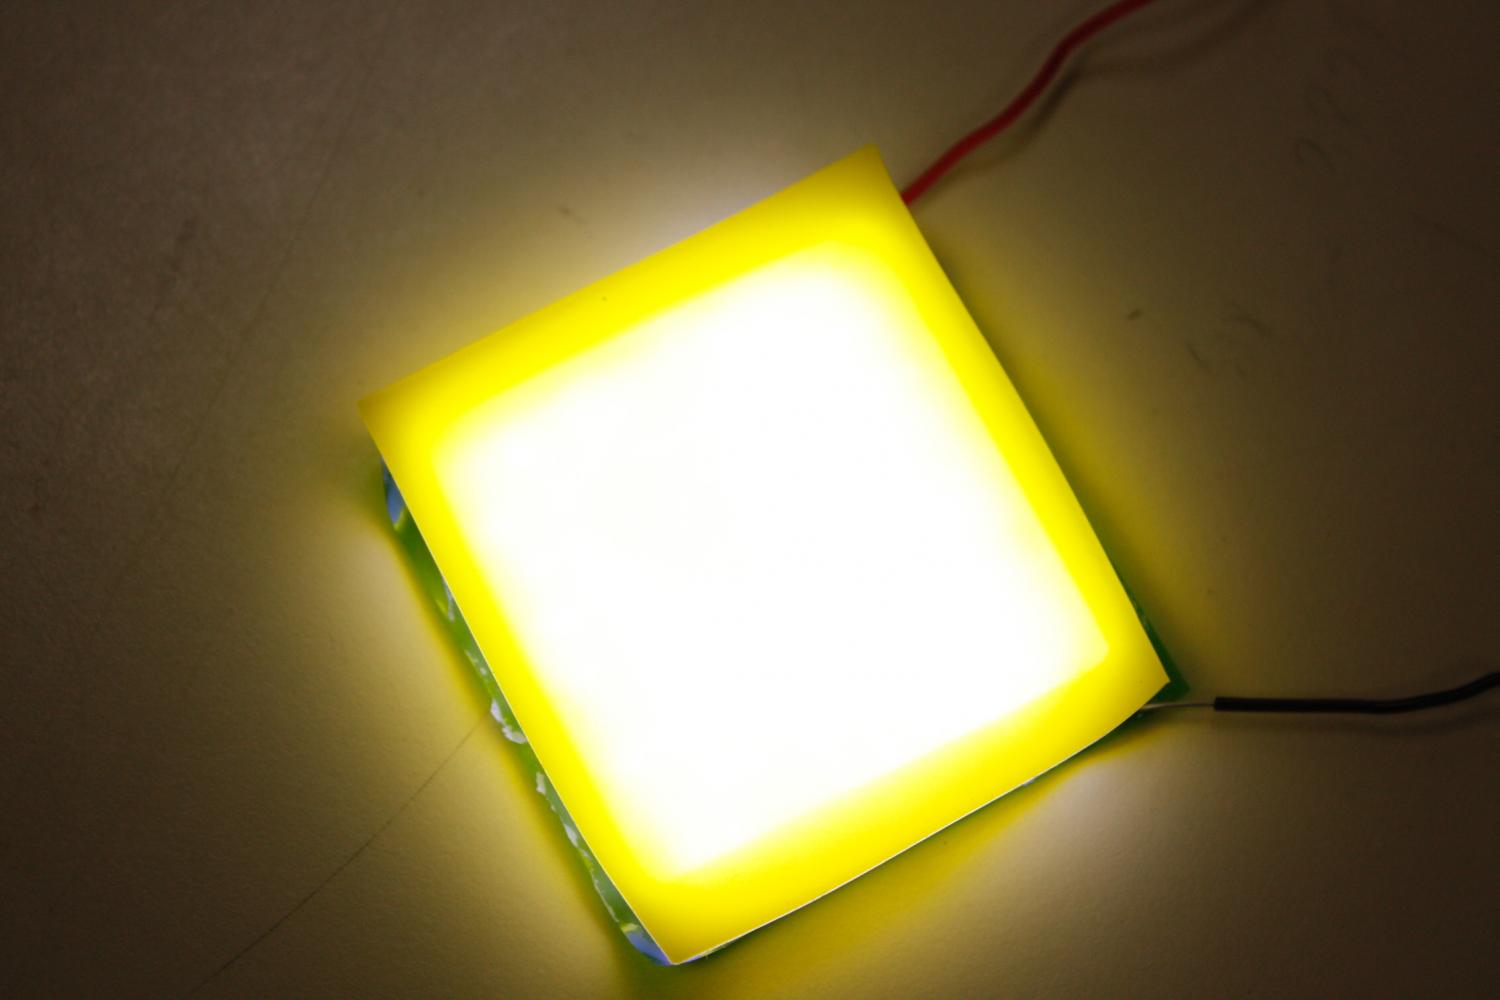 Light emitting designs - A New Design For An Easily Fabricated Flexible And Wearable White Light Led